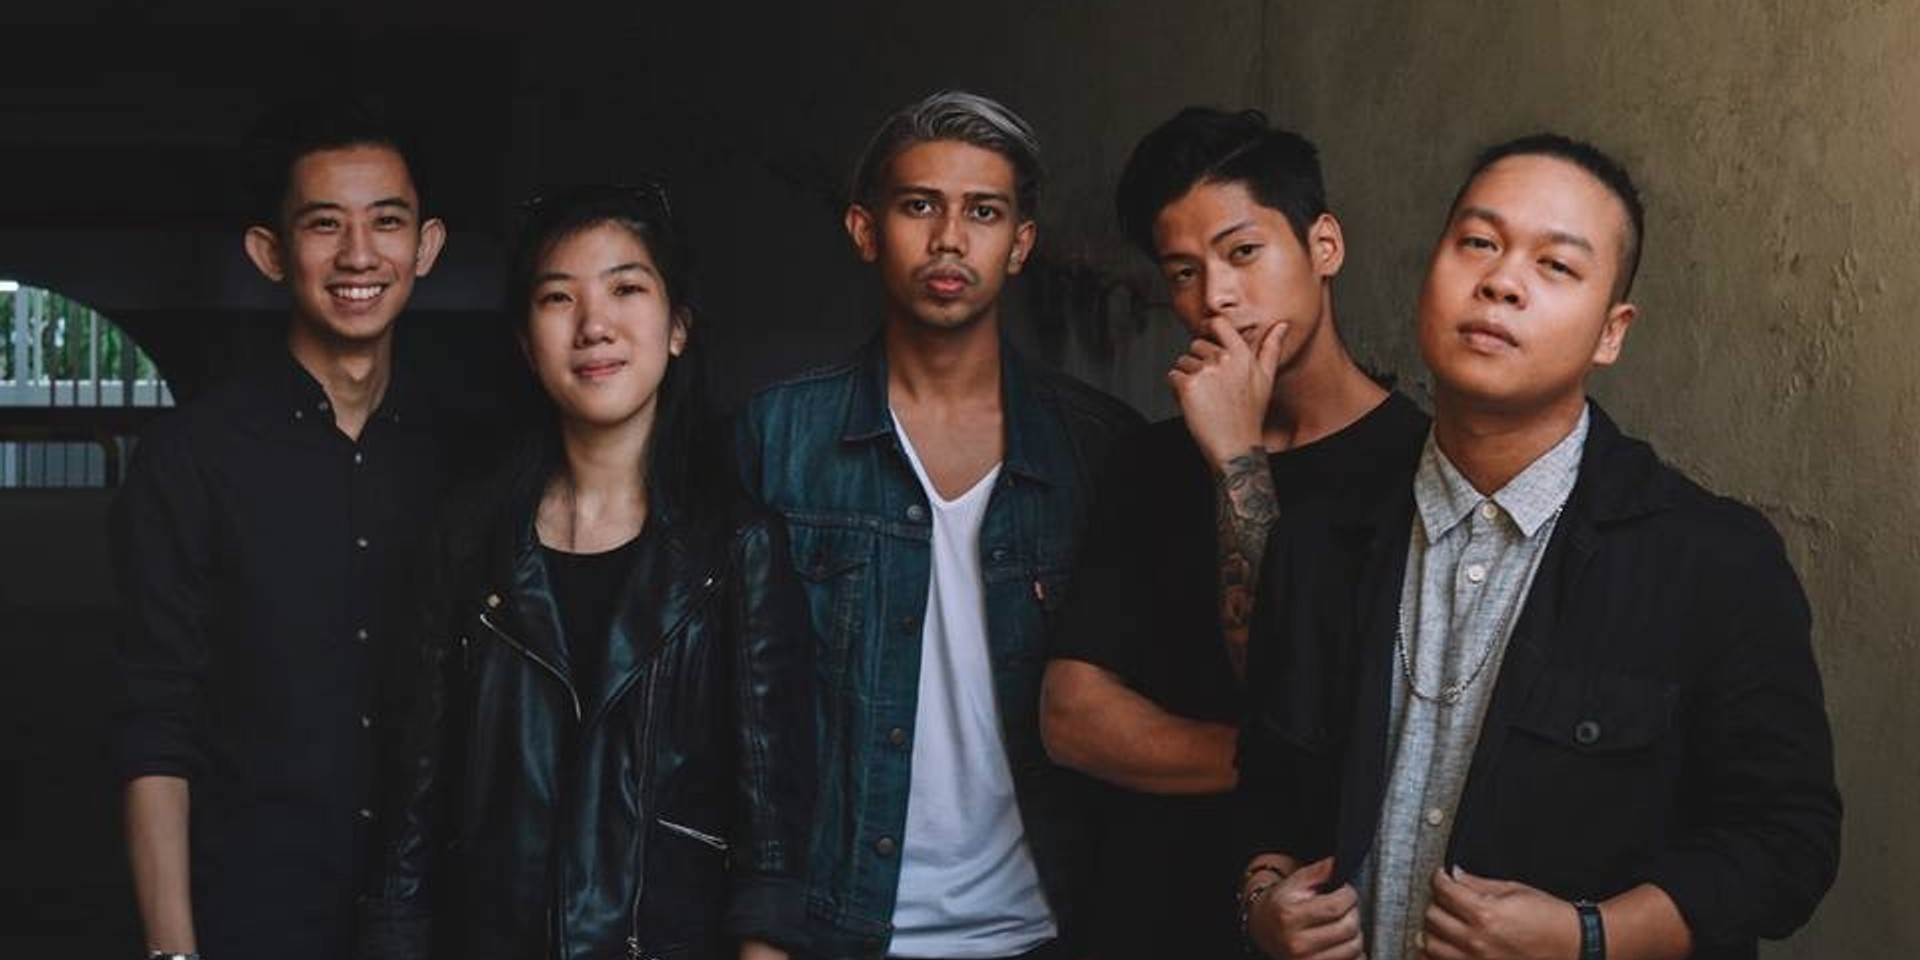 WATCH: The Summer State shifts gear with summery pop-rock anthem, 'Enough'